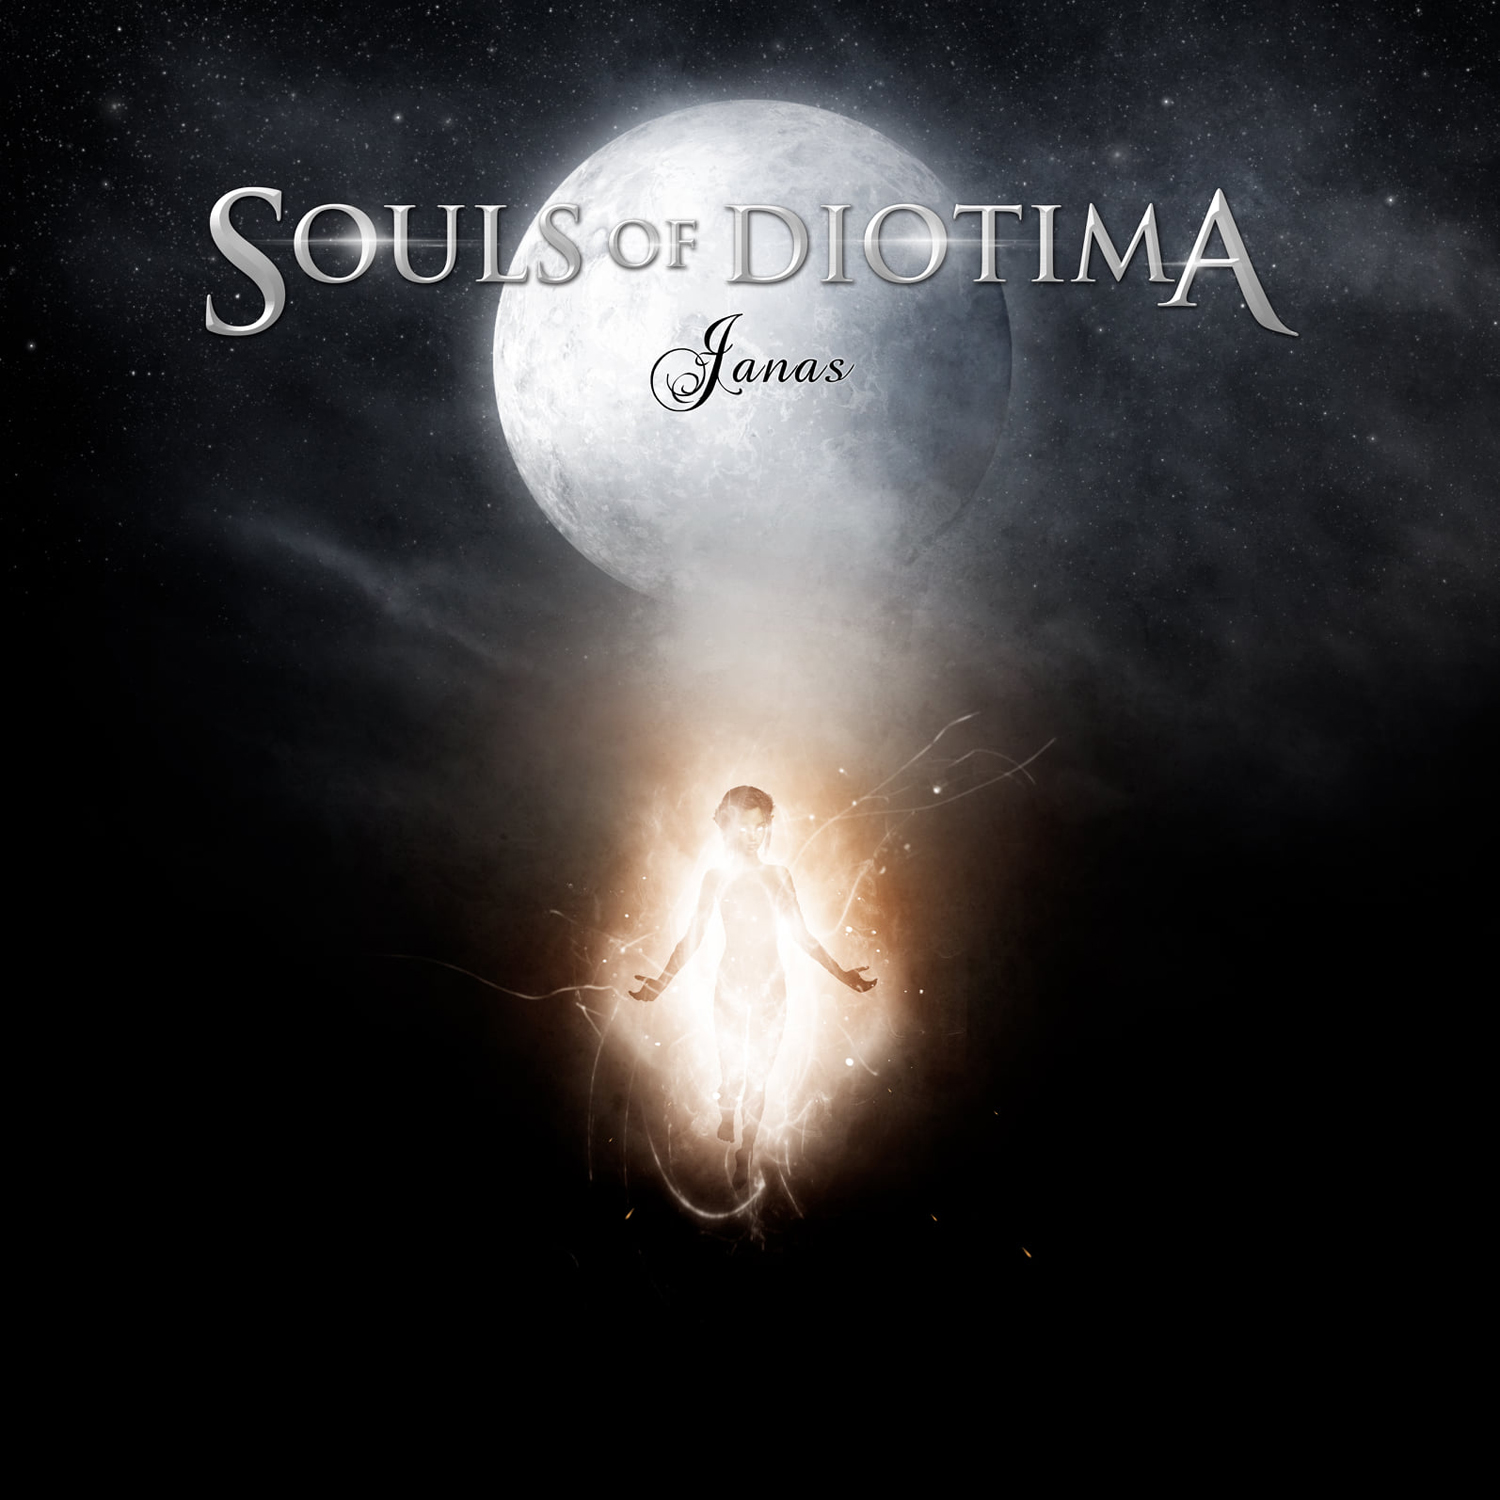 SOULS OF DIOTIMA - Releases (1)